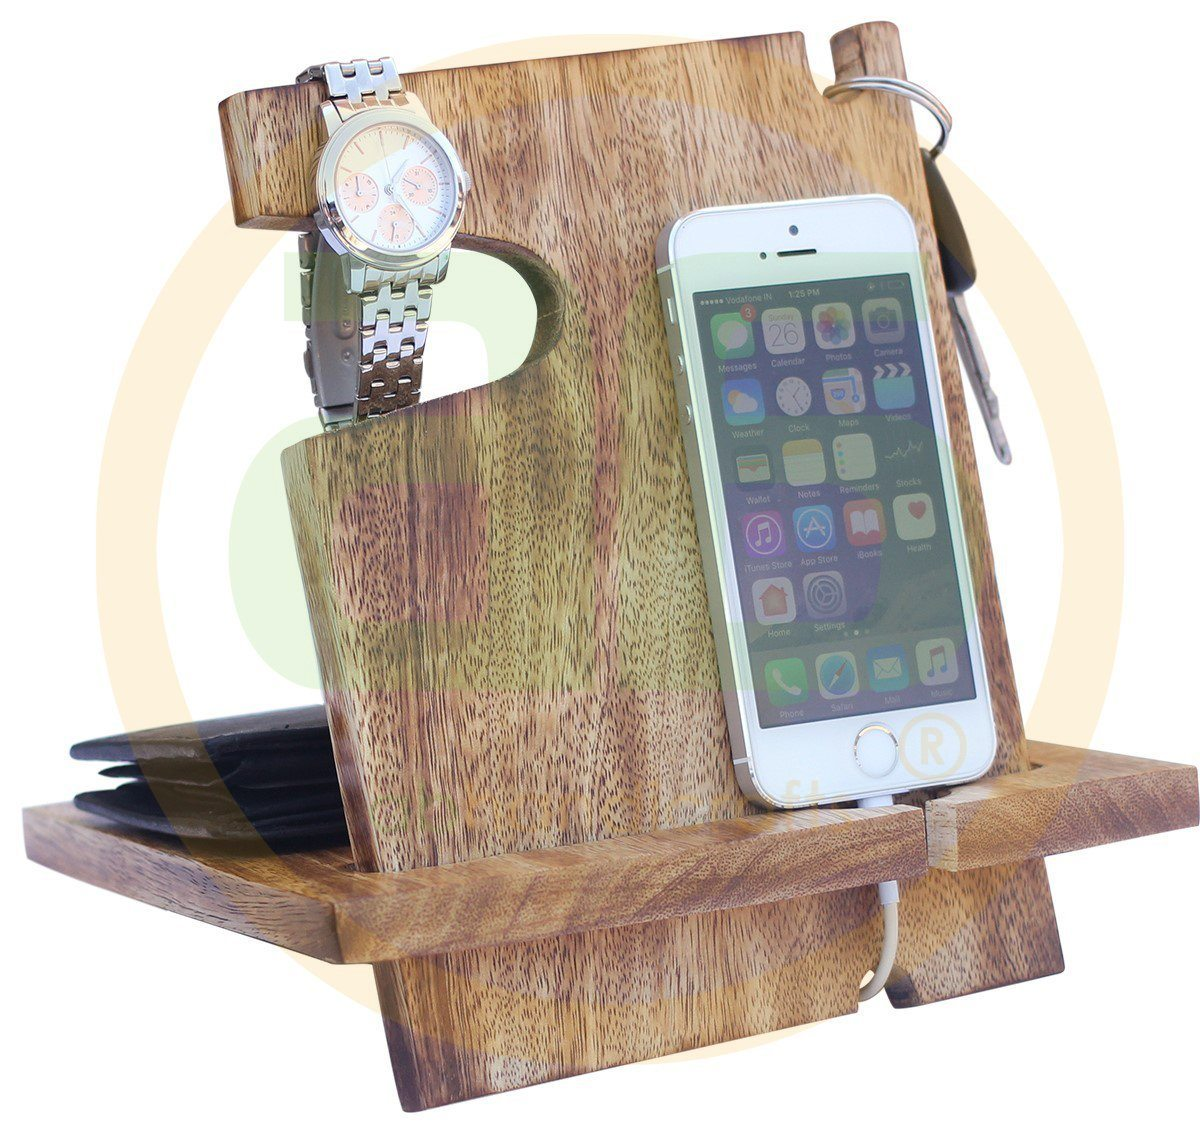 Father's Day Gift Ideas | Gifts For Dad | Gifts For Men | Phone Docking Station